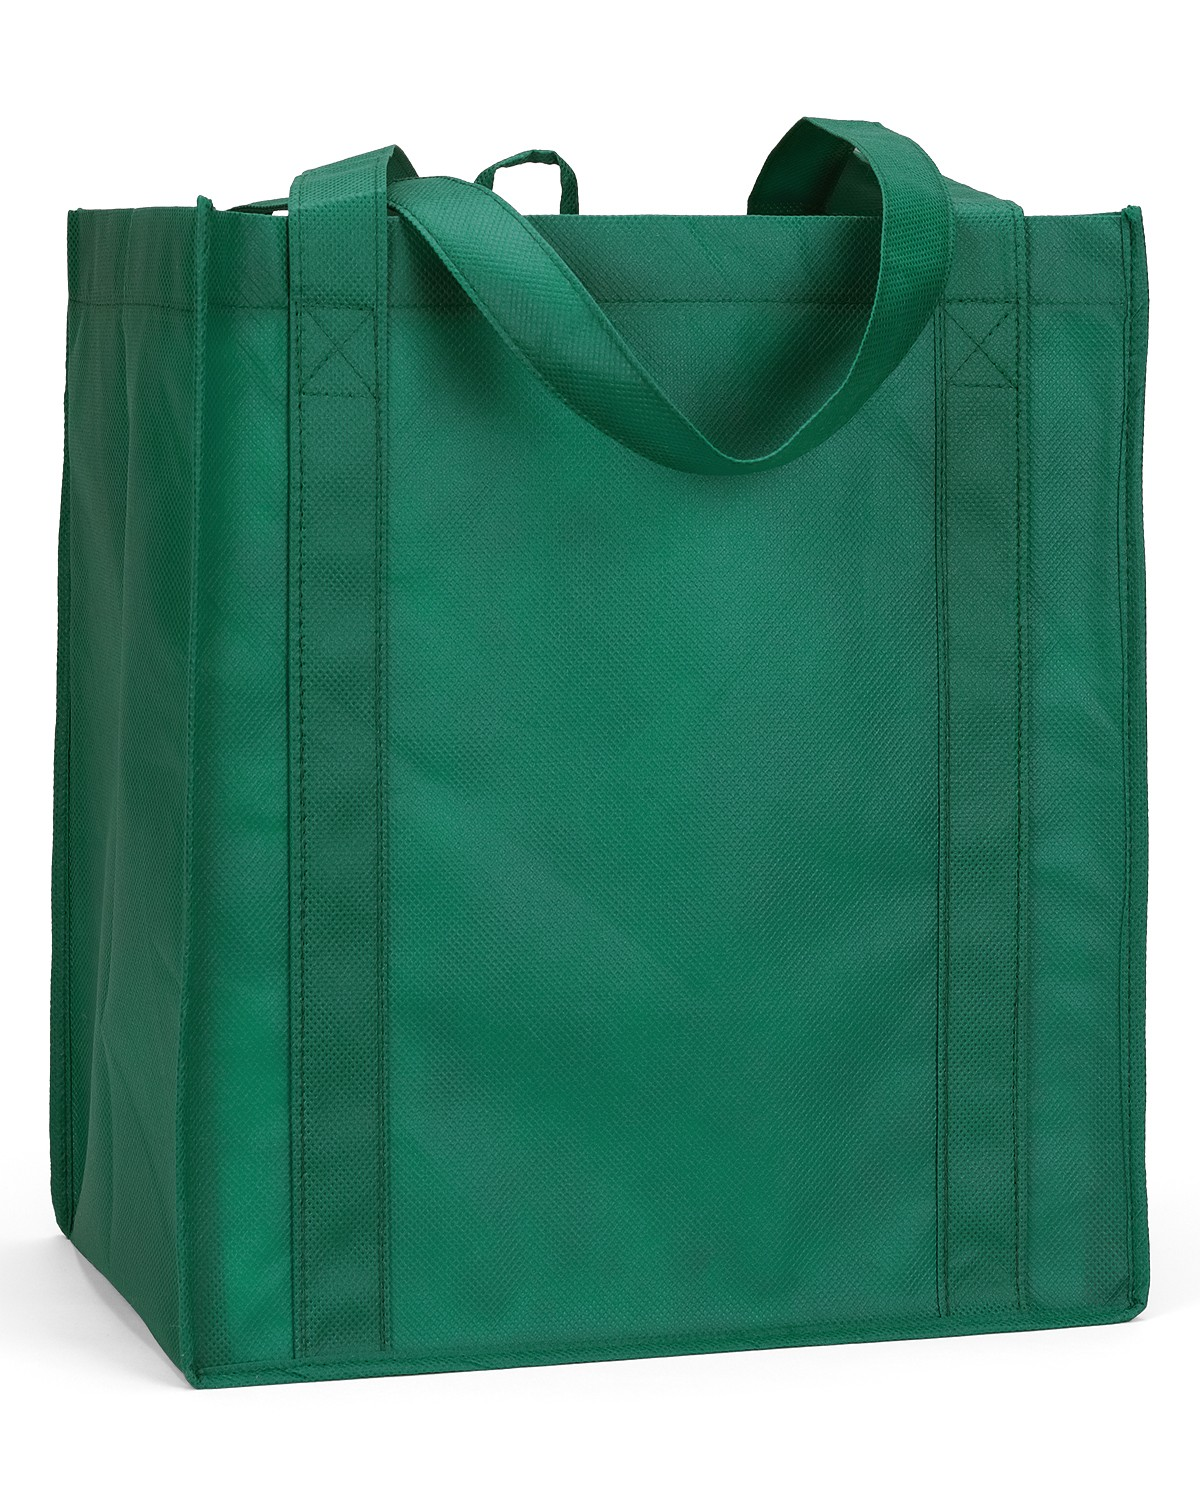 LB3000 Liberty Bags FOREST GREEN